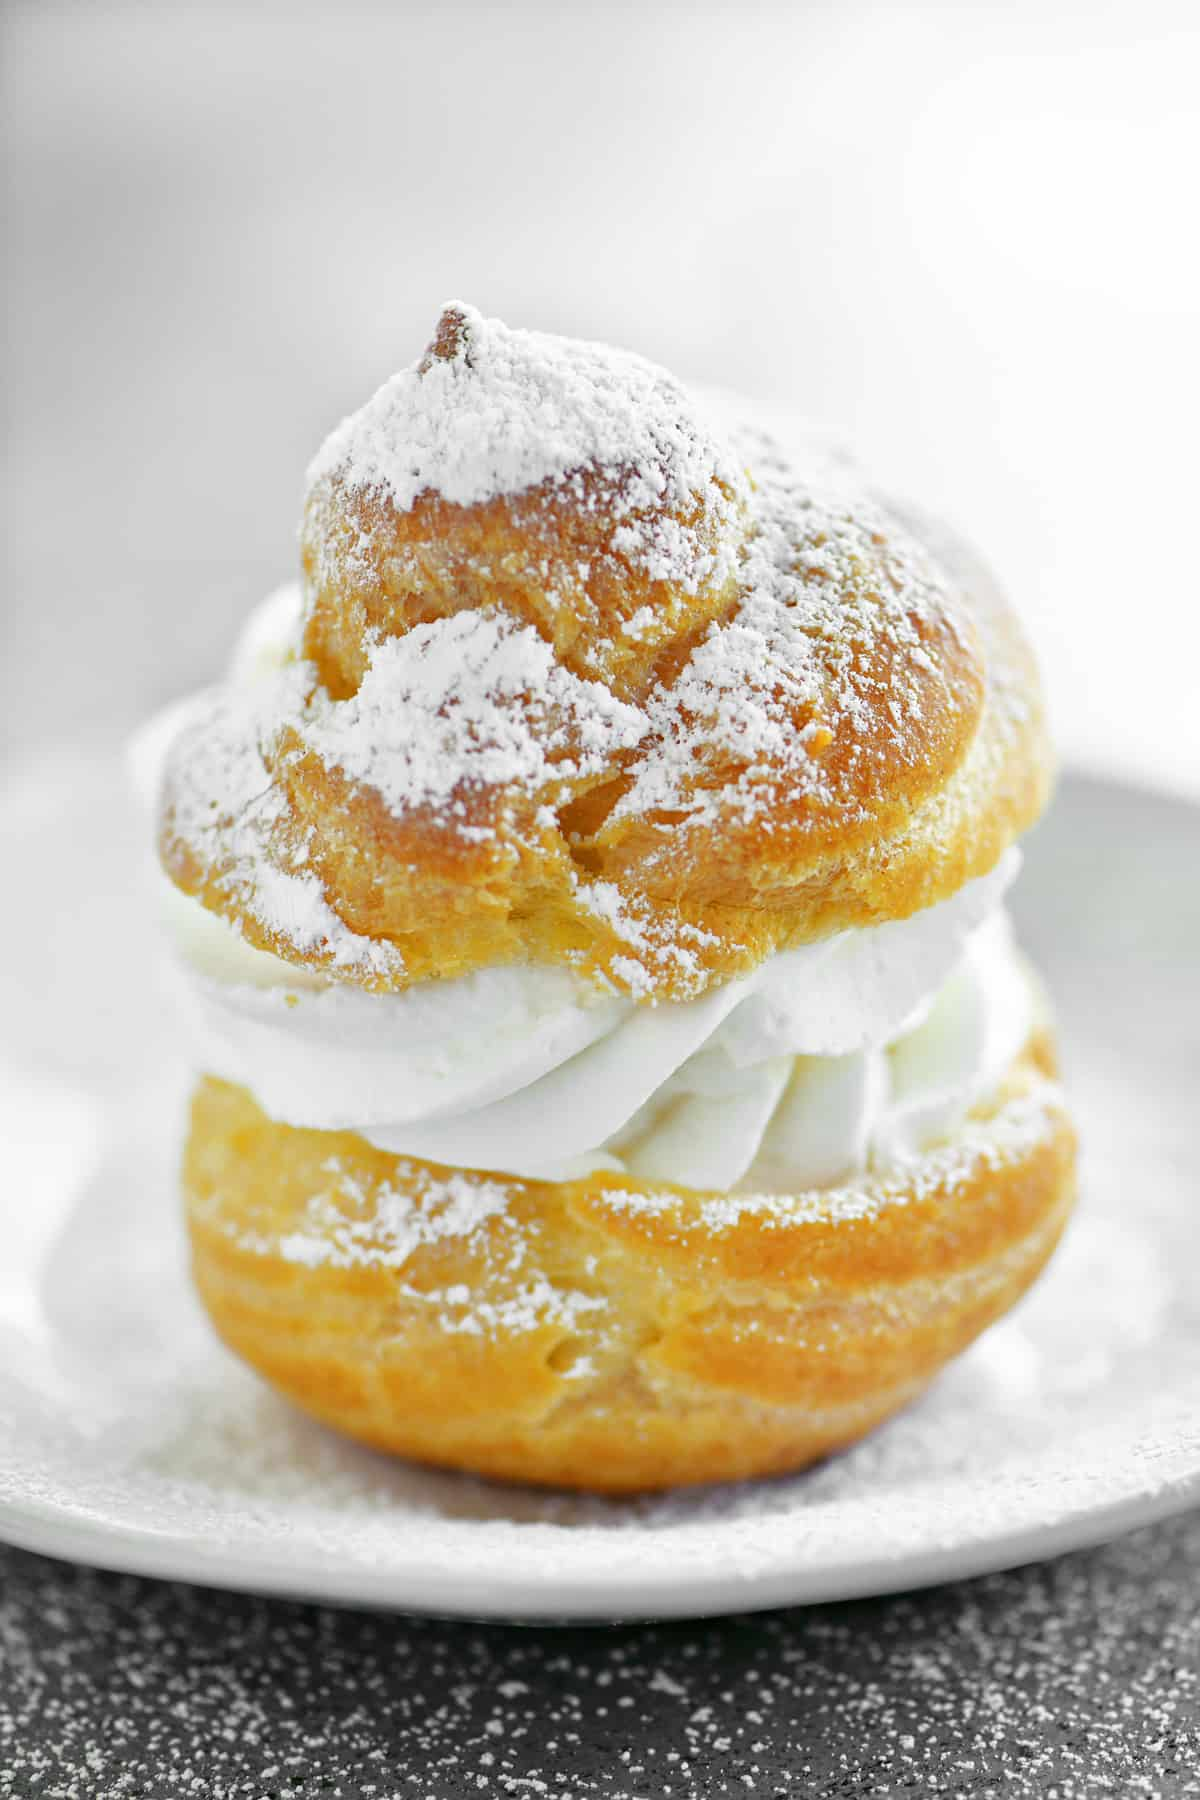 a single cream puff on a plate